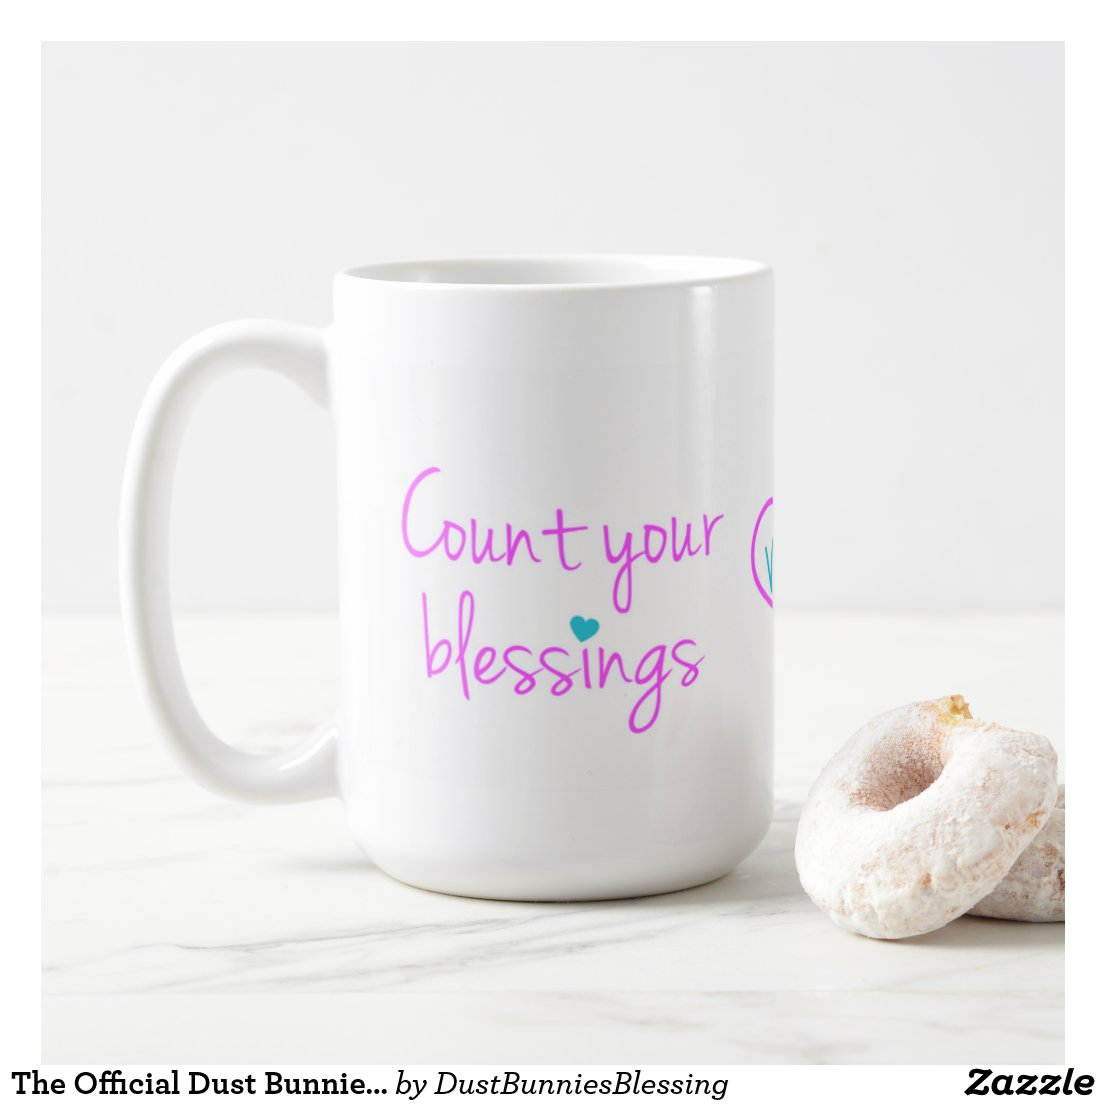 The Official Dust Bunnies & Blessings Coffee Mug